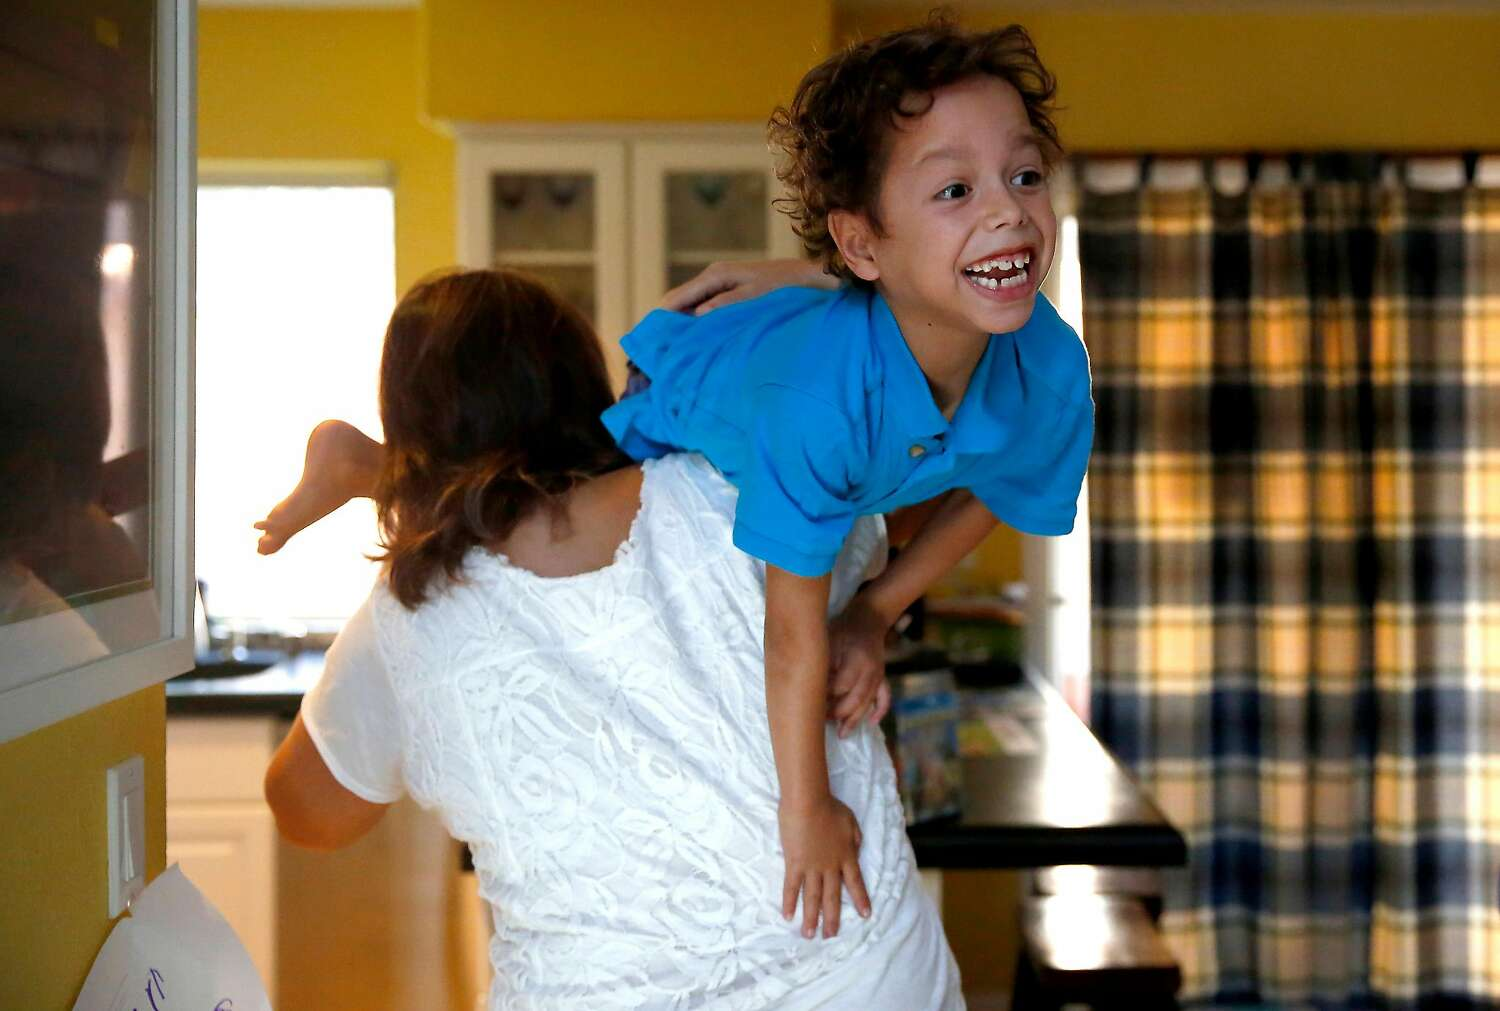 Luane carries Jordan into the kitchen to brush his teeth.